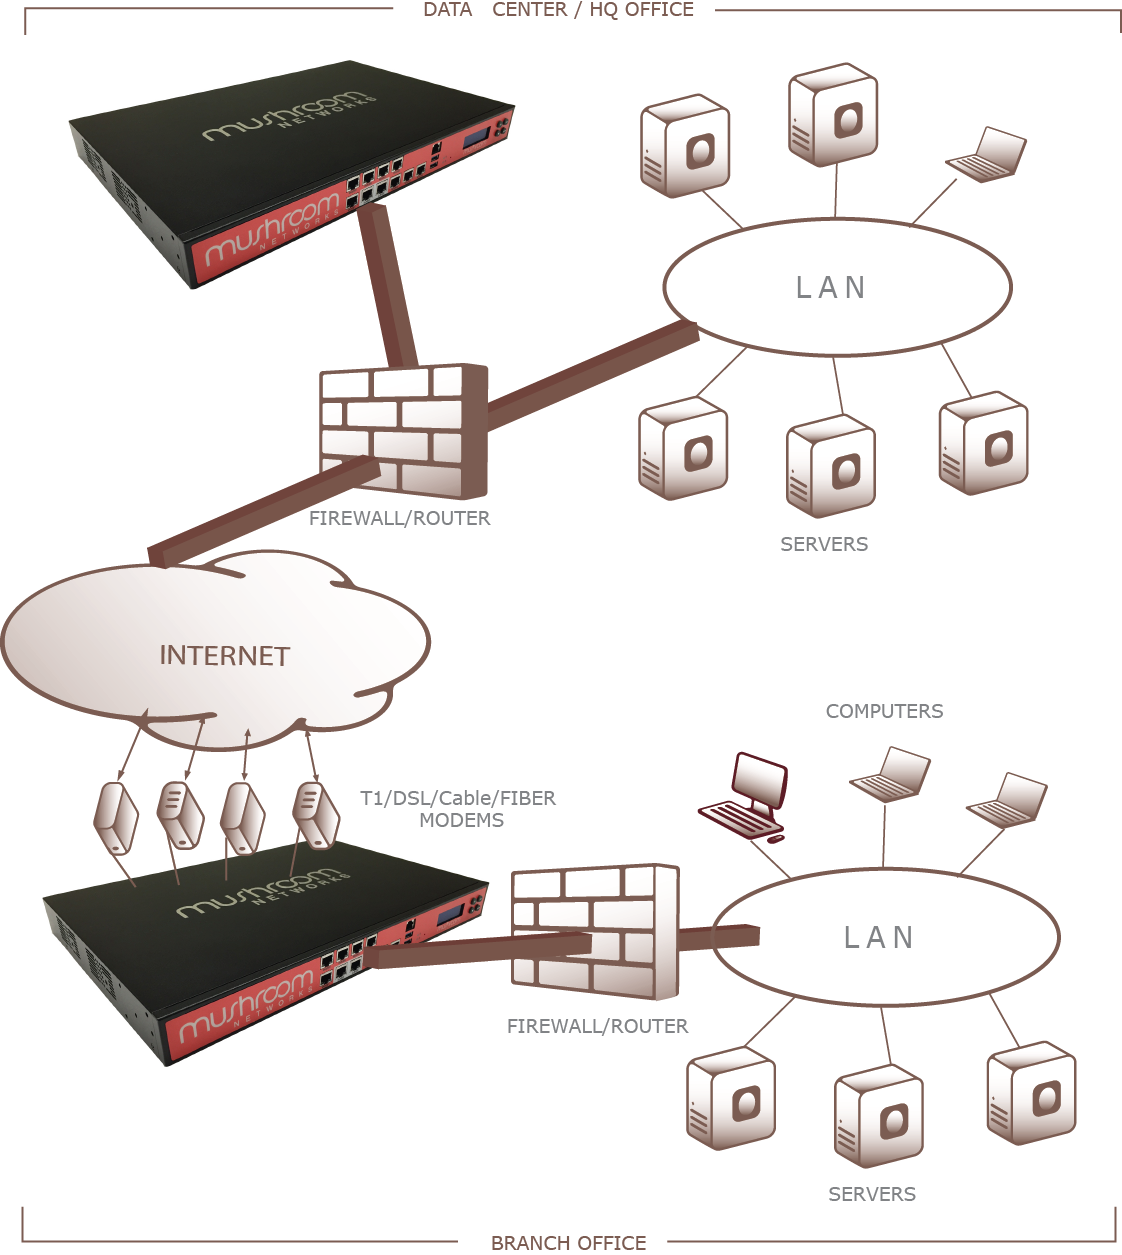 low latency WAN access for data centers for reliability and redundancy